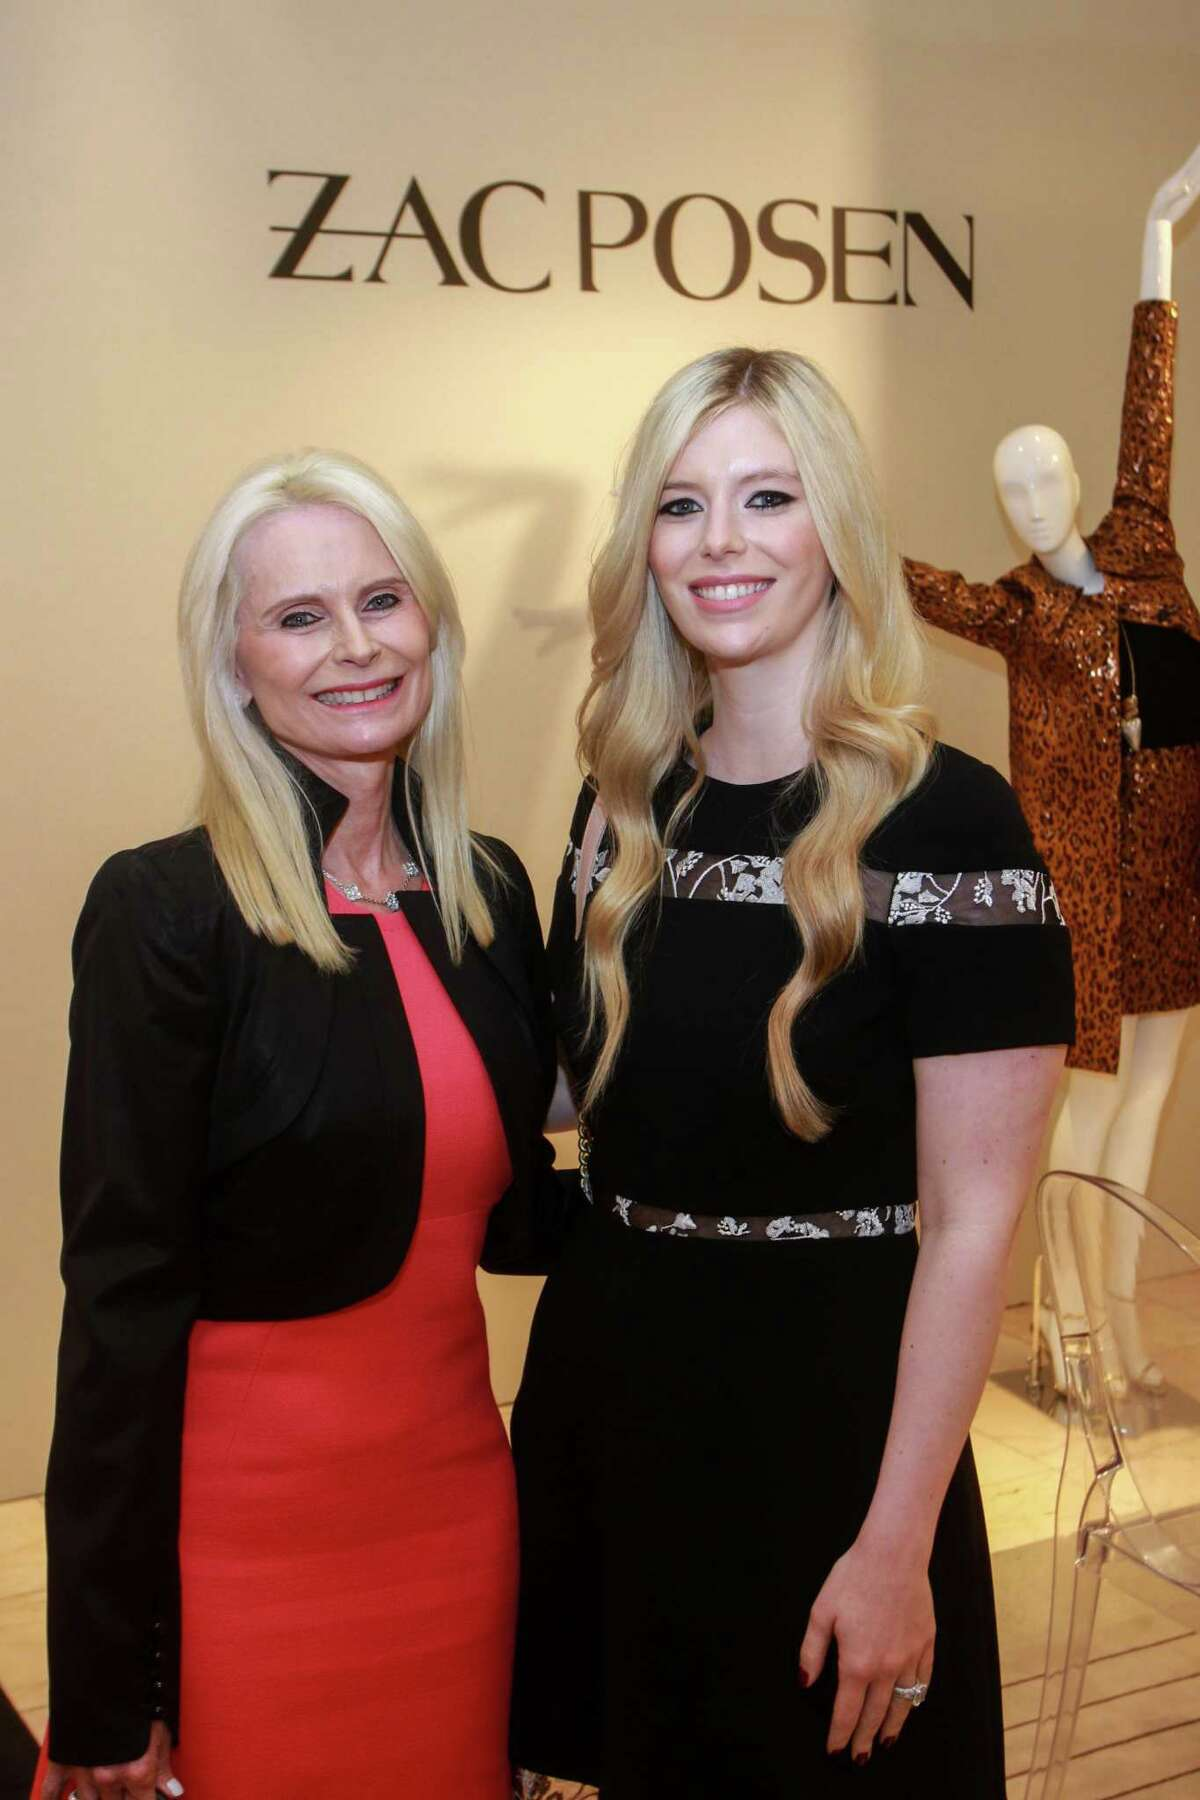 Jo Lynn Falgout, left, and Kimberly Falgout Scheele at the Zac Posen event at Neiman Marcus in Houston on October 23, 2019.